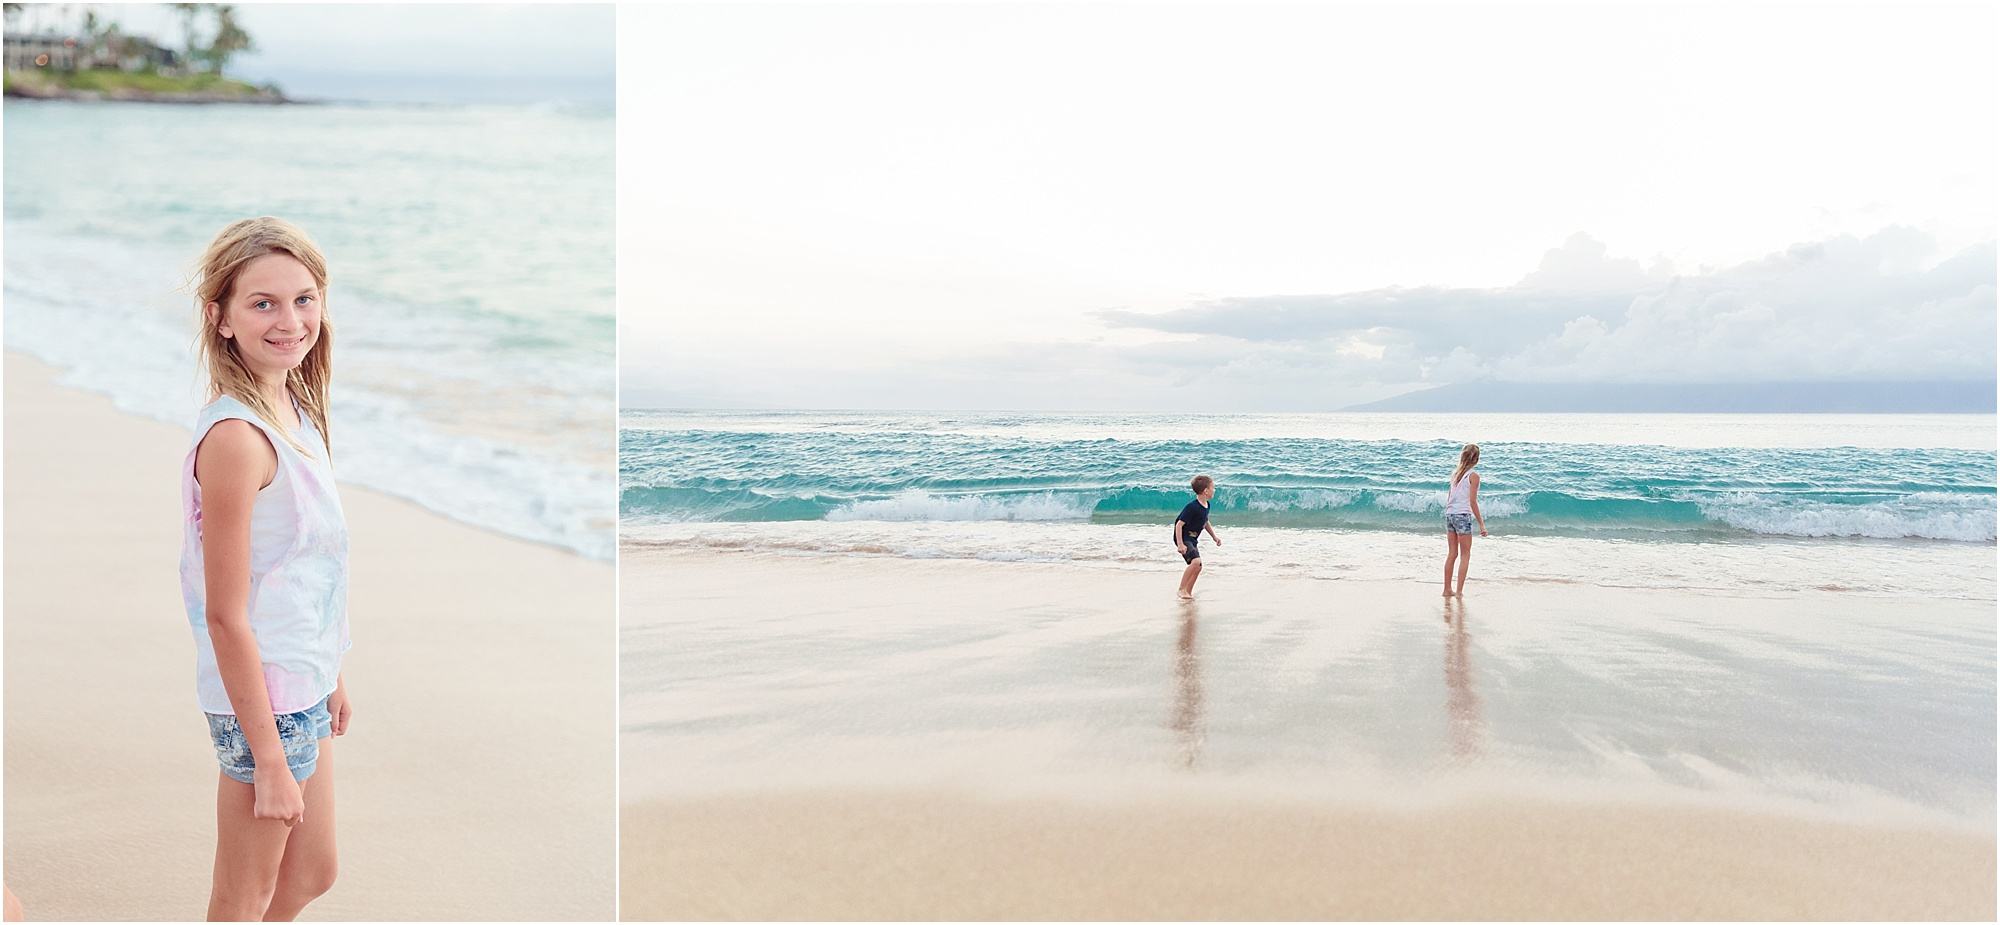 Maui Vacation Photography | Hawaii Beach Photography